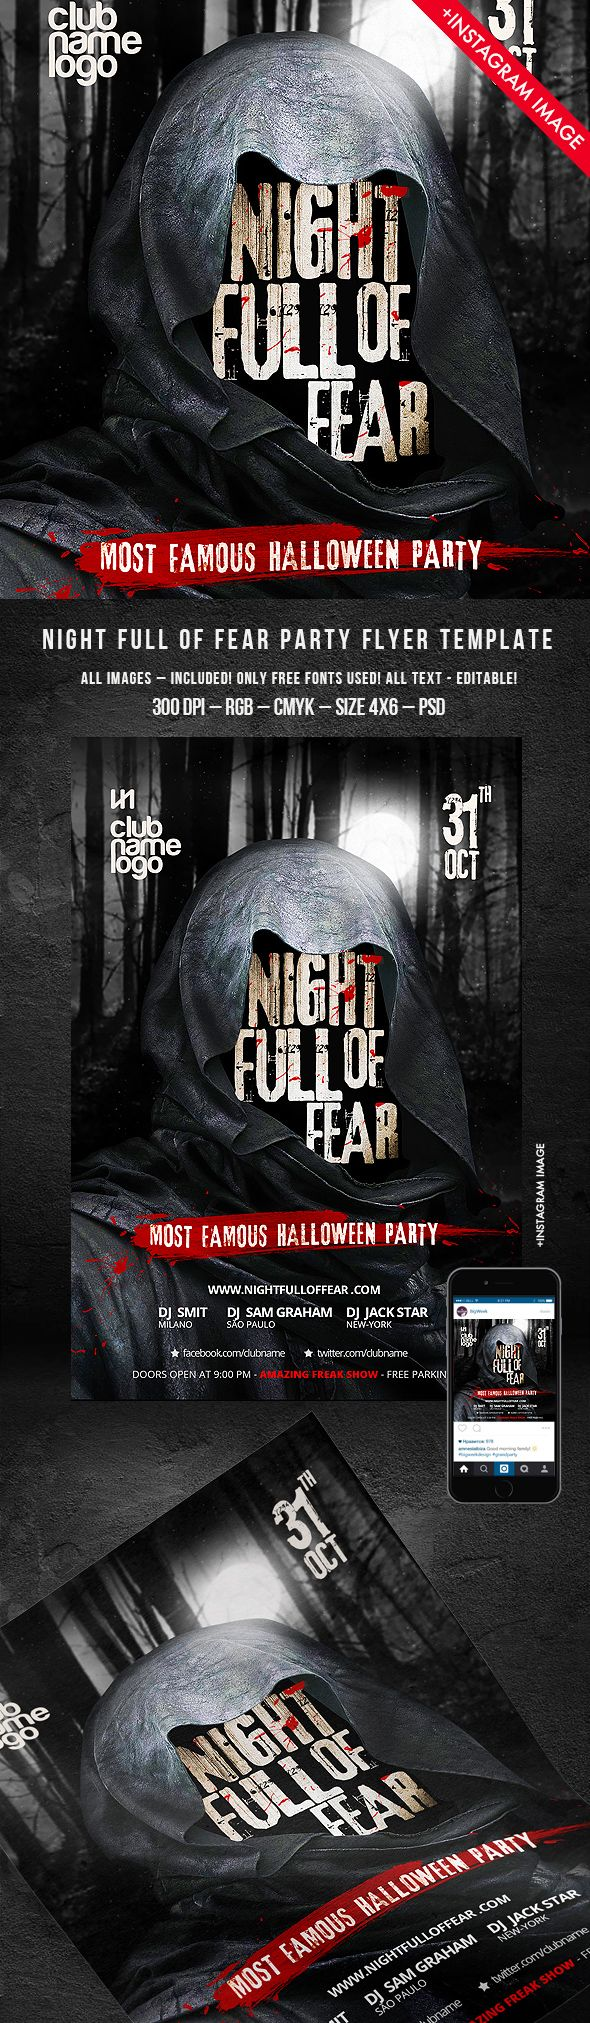 Night full of fear is coming! And your best #halloween2015 party too! ) Take my new flyer: http://graphicriver.net/item/halloween-flyer-night-full-of-fear/13078348?ref=bigweek  #halloween #halloween2015 #zombie #scary #scream #fear #night #nightclub #party #dark #black #template #cool #creative #professional #poster #print #design #pumpkin